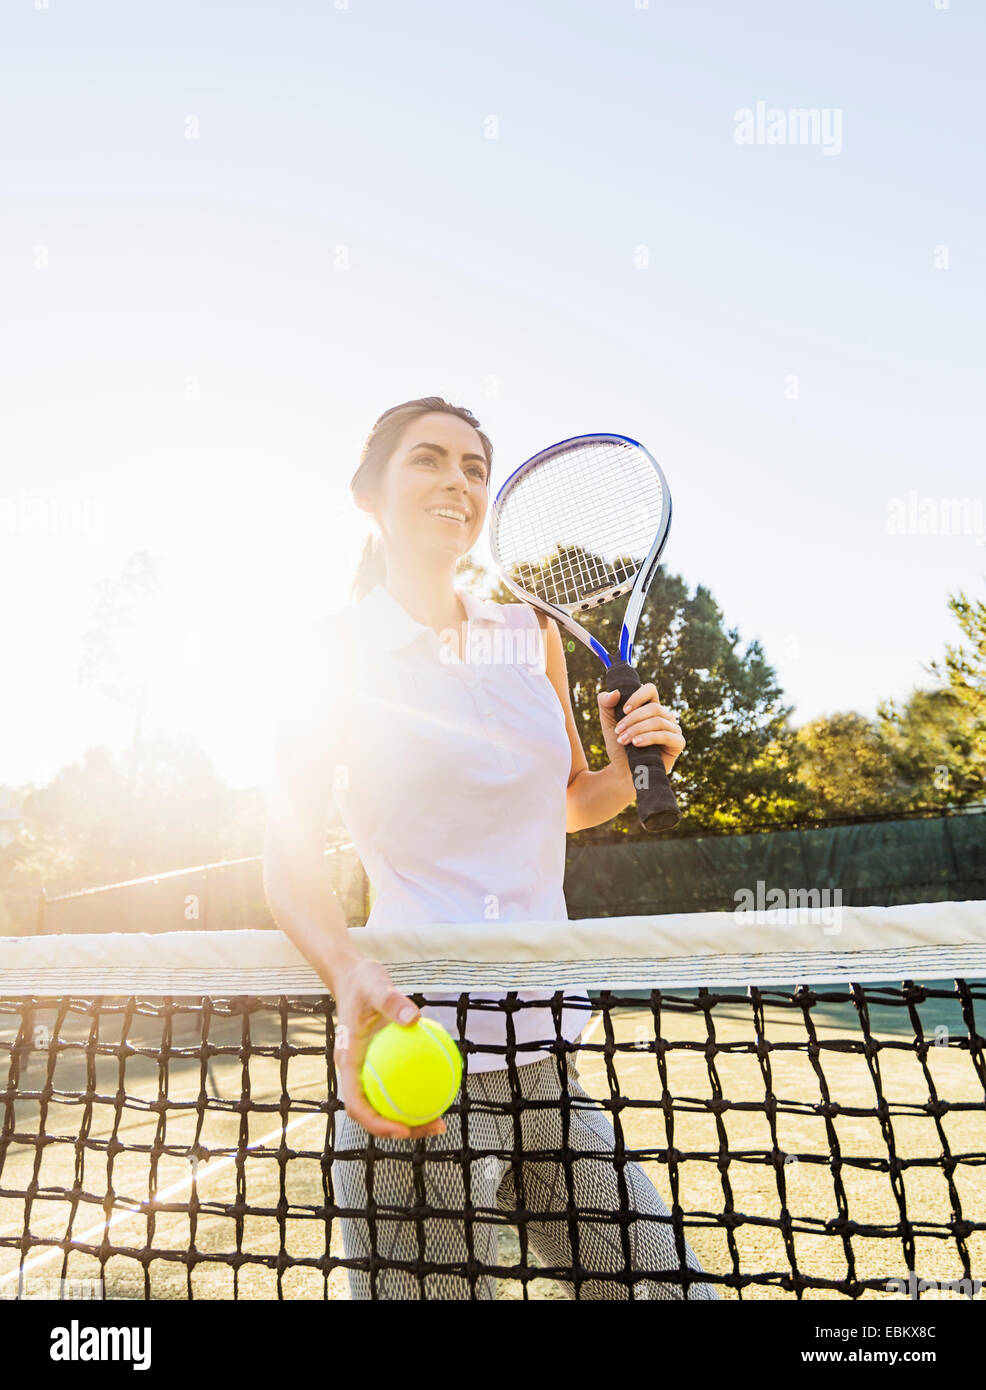 USA, Florida, Jupiter, Portrait of young woman standing by net, holding tennis ball and tennis racket - Stock Image